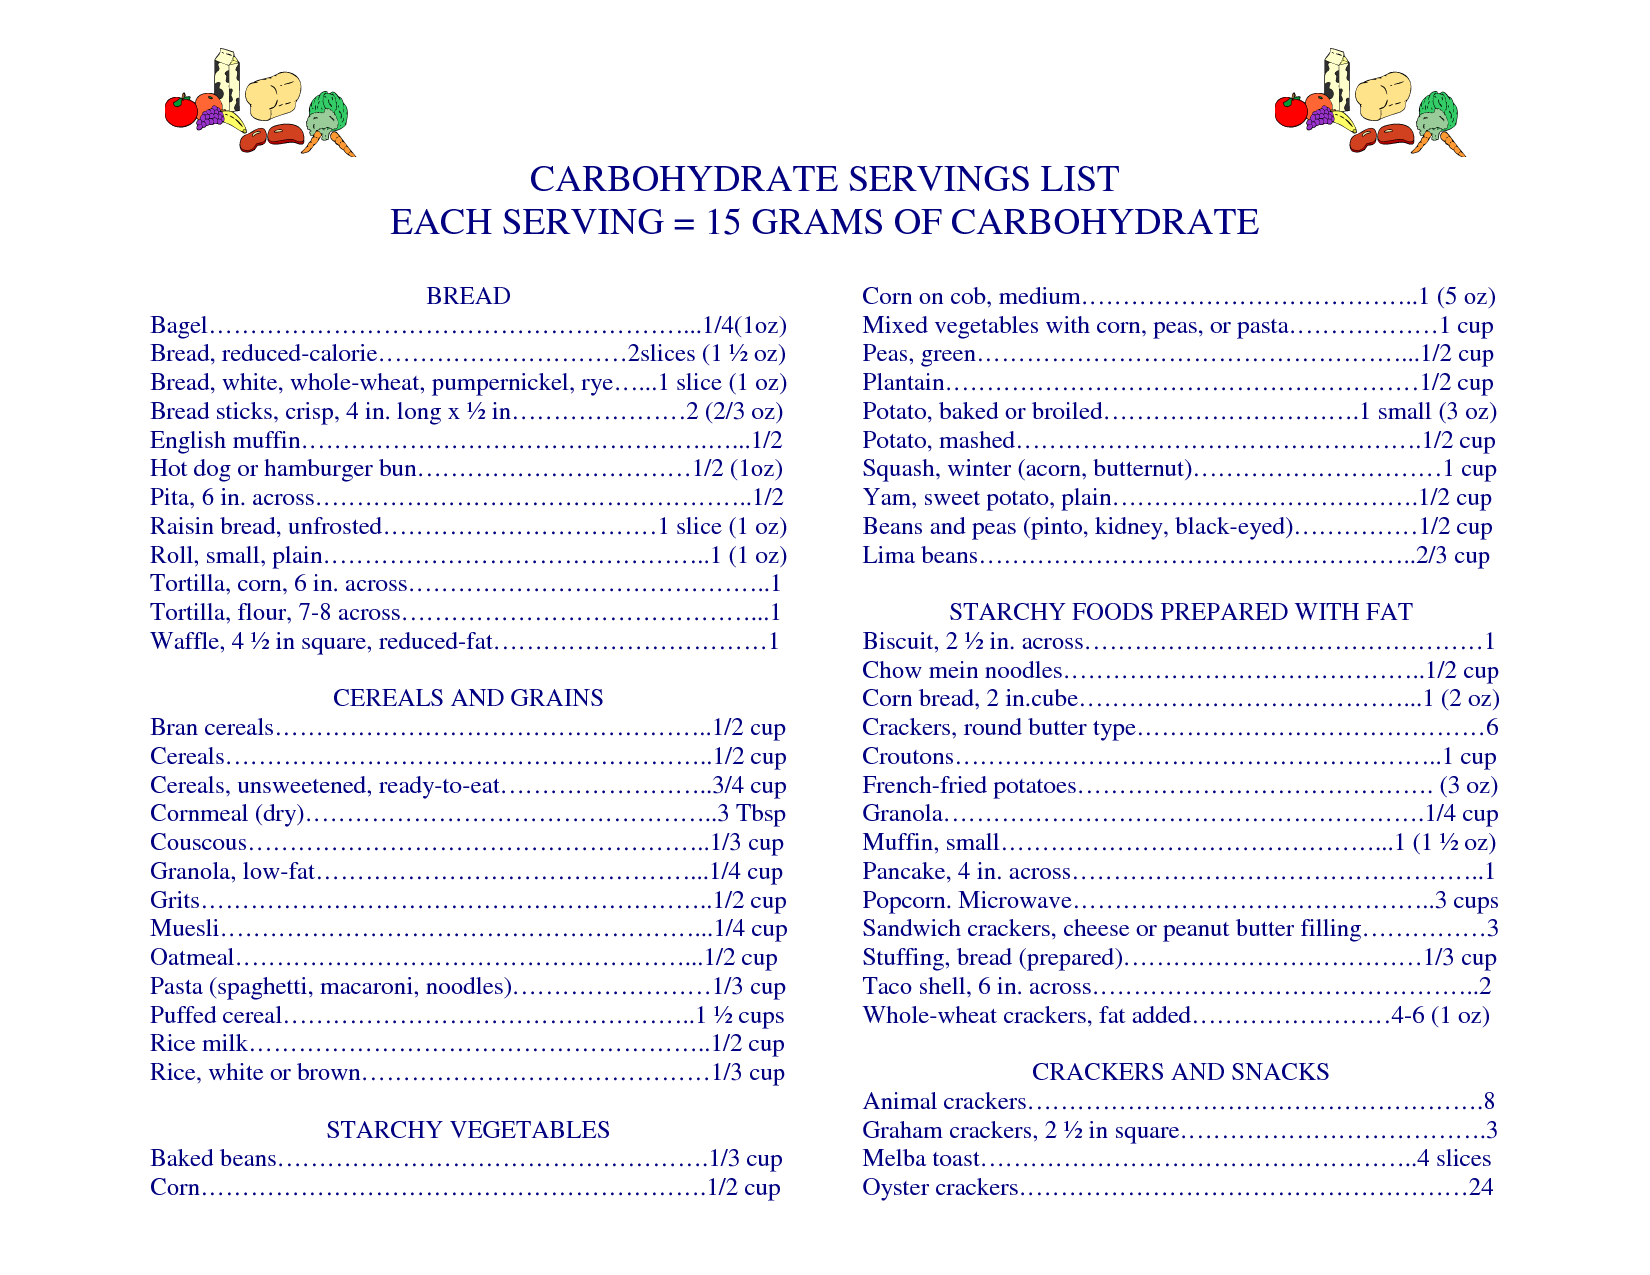 It's just a picture of Stupendous Carb Counting Chart Printable